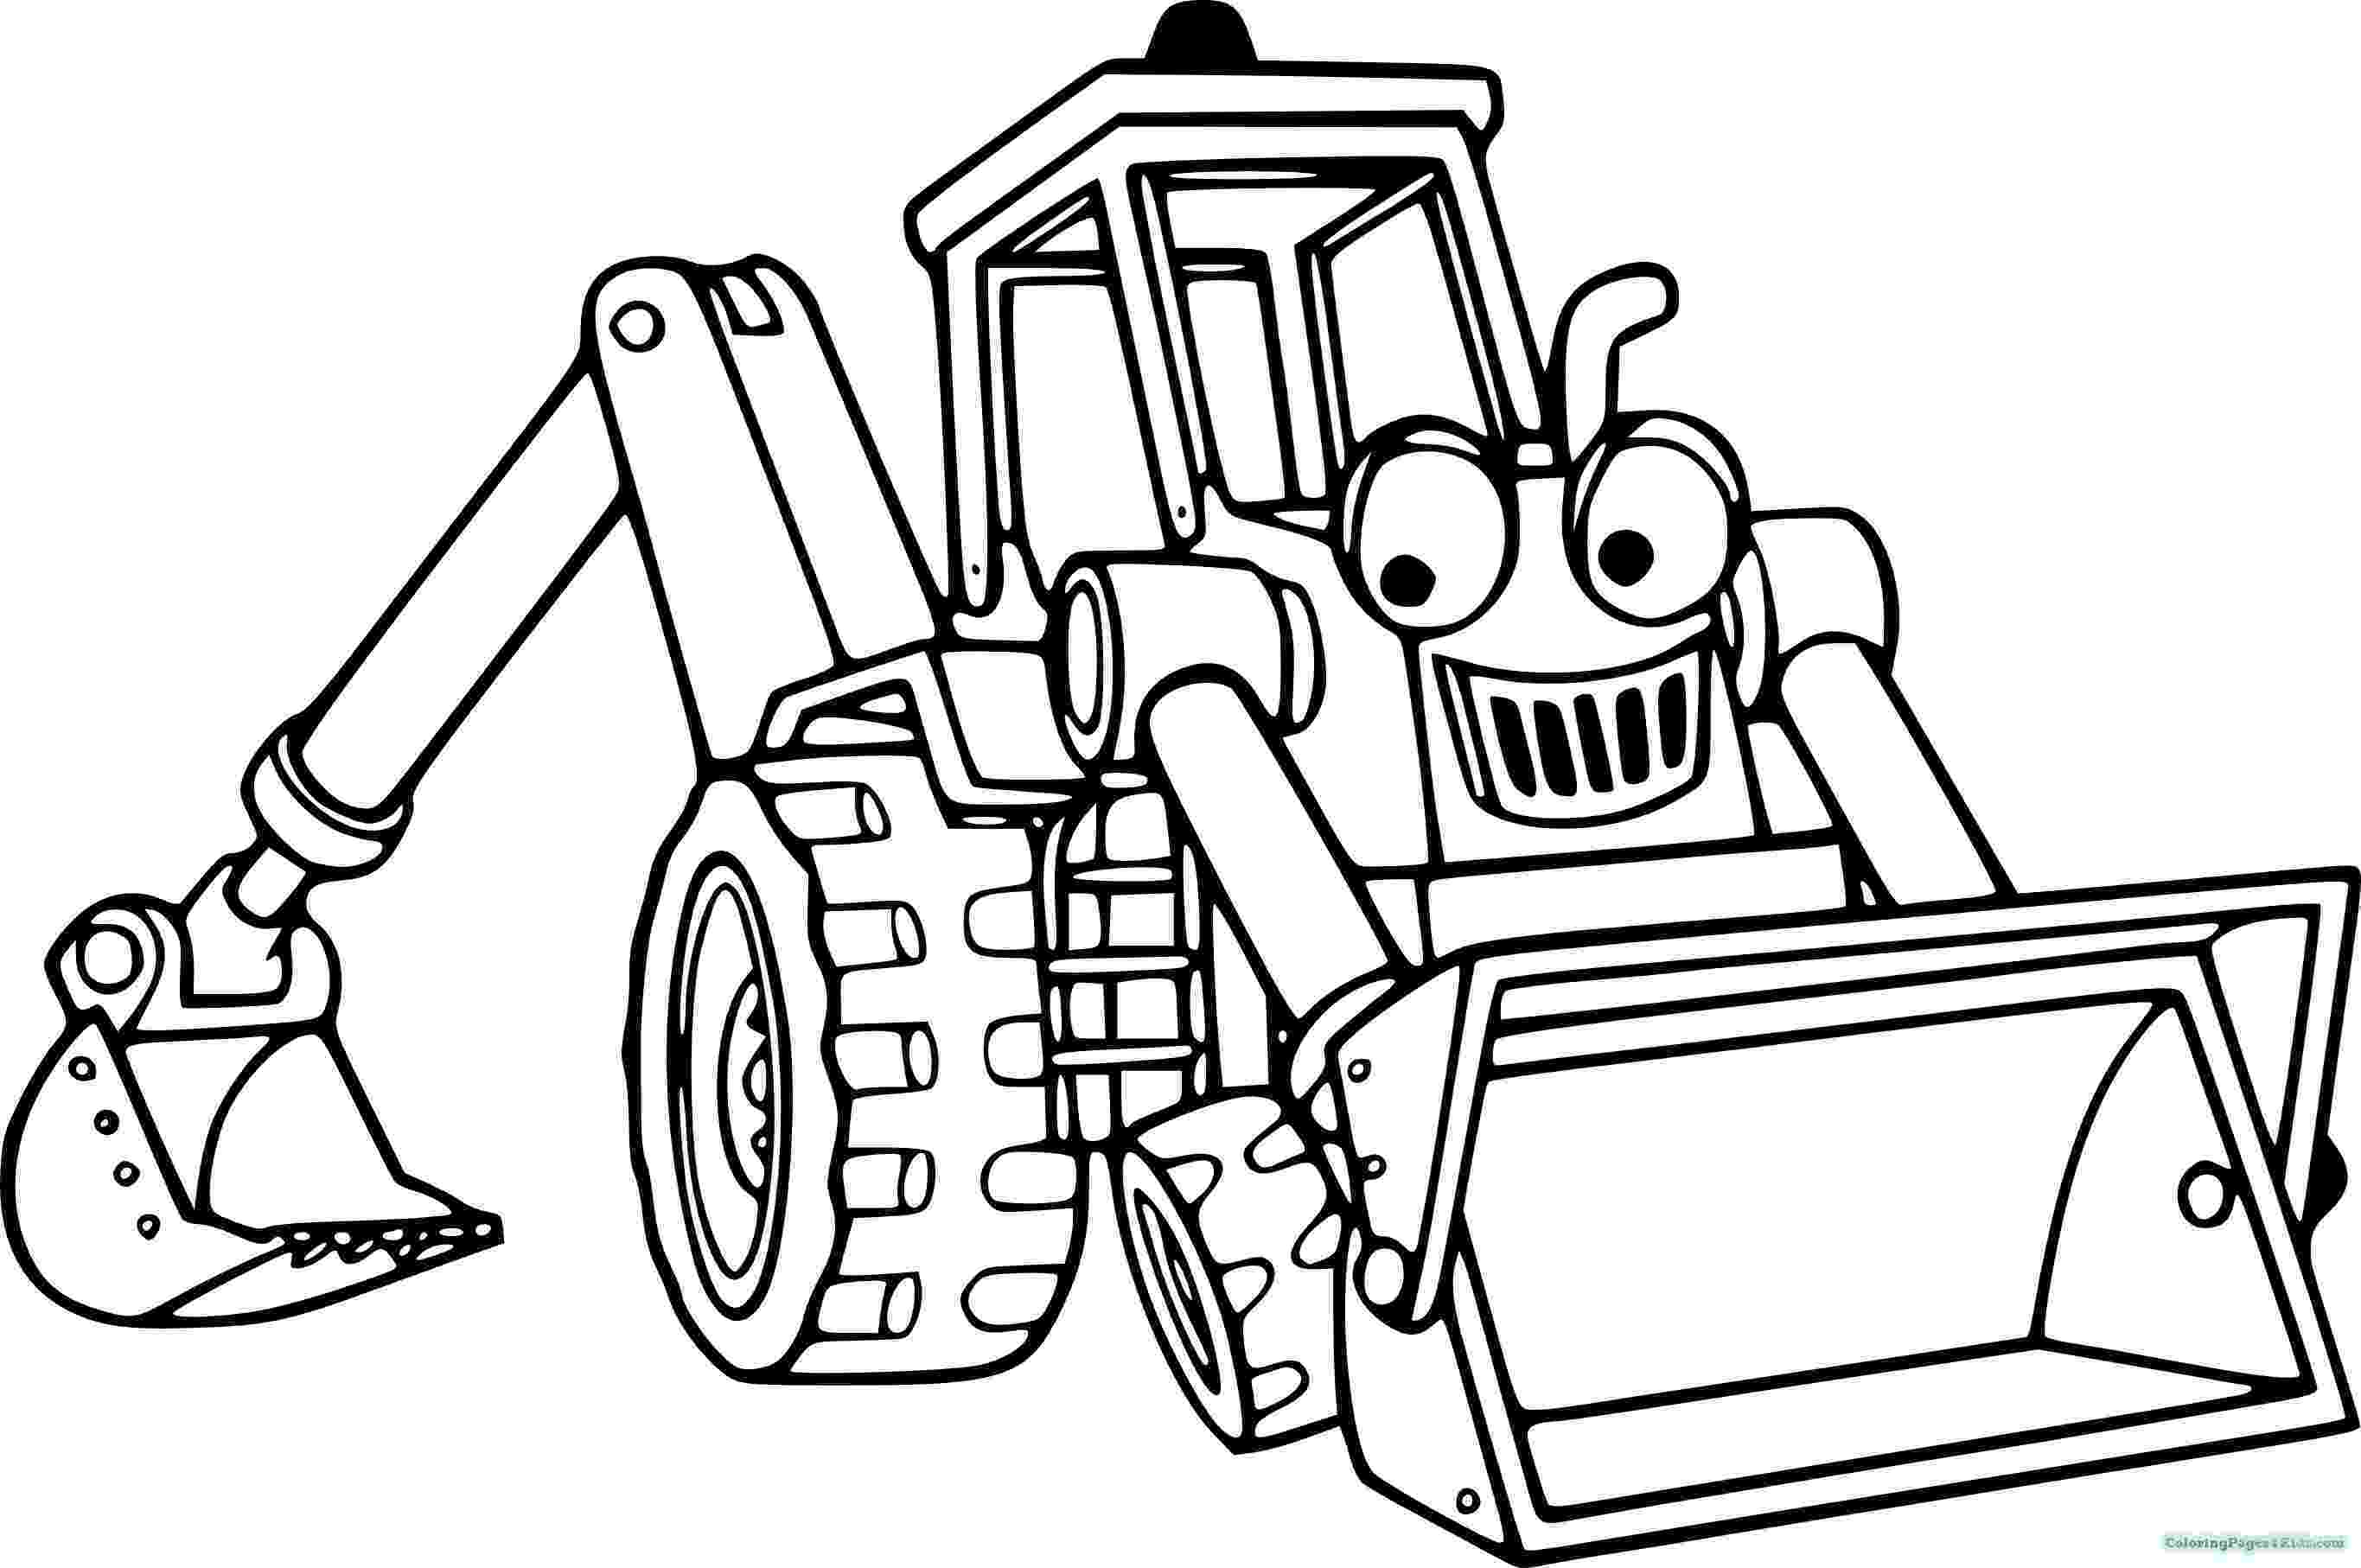 tractor coloring pages for toddlers free tractor coloring pages printable transportation pages for tractor coloring toddlers